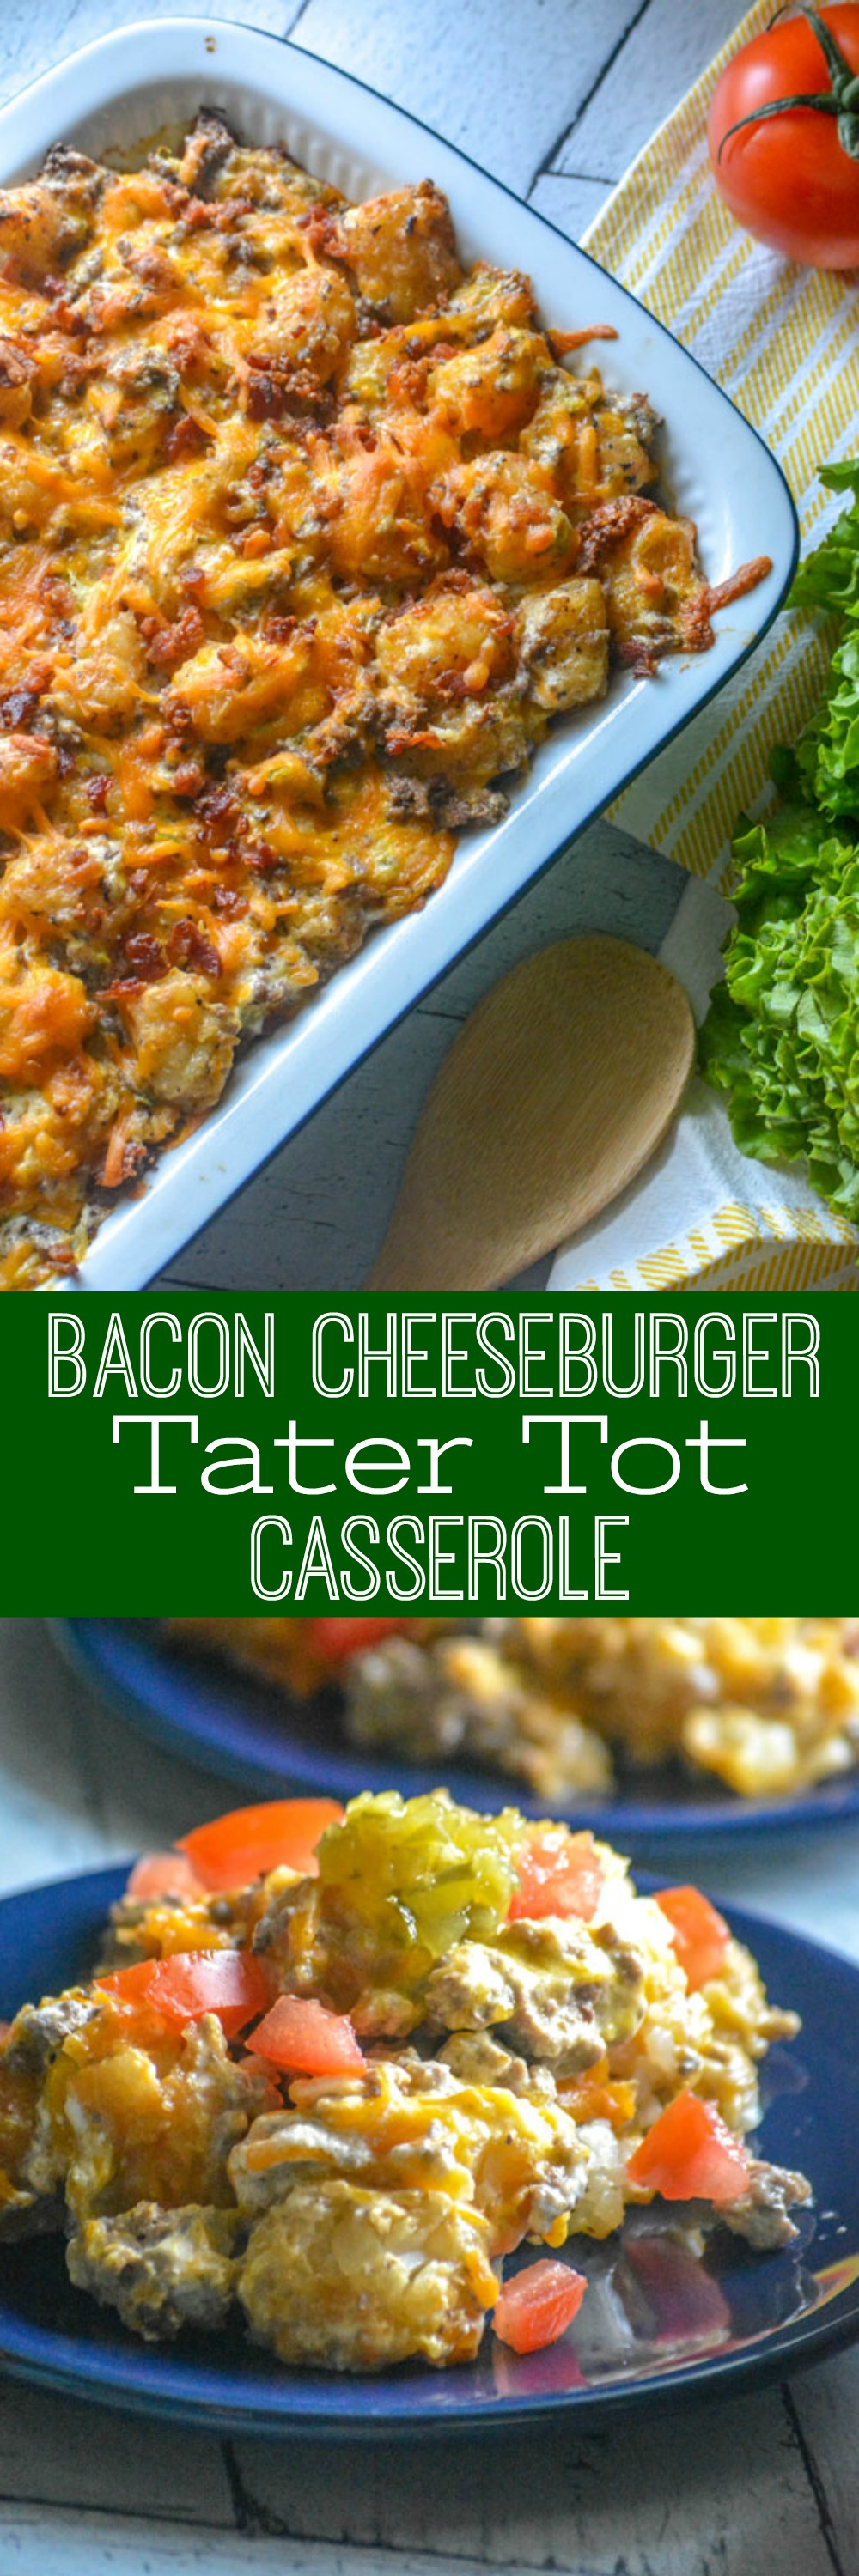 A quick & easy dinner idea, this Bacon Cheeseburger Tater Tot Casserole is a family favorite meal that's full of flavors everyone will love, even your pickiest of eaters.